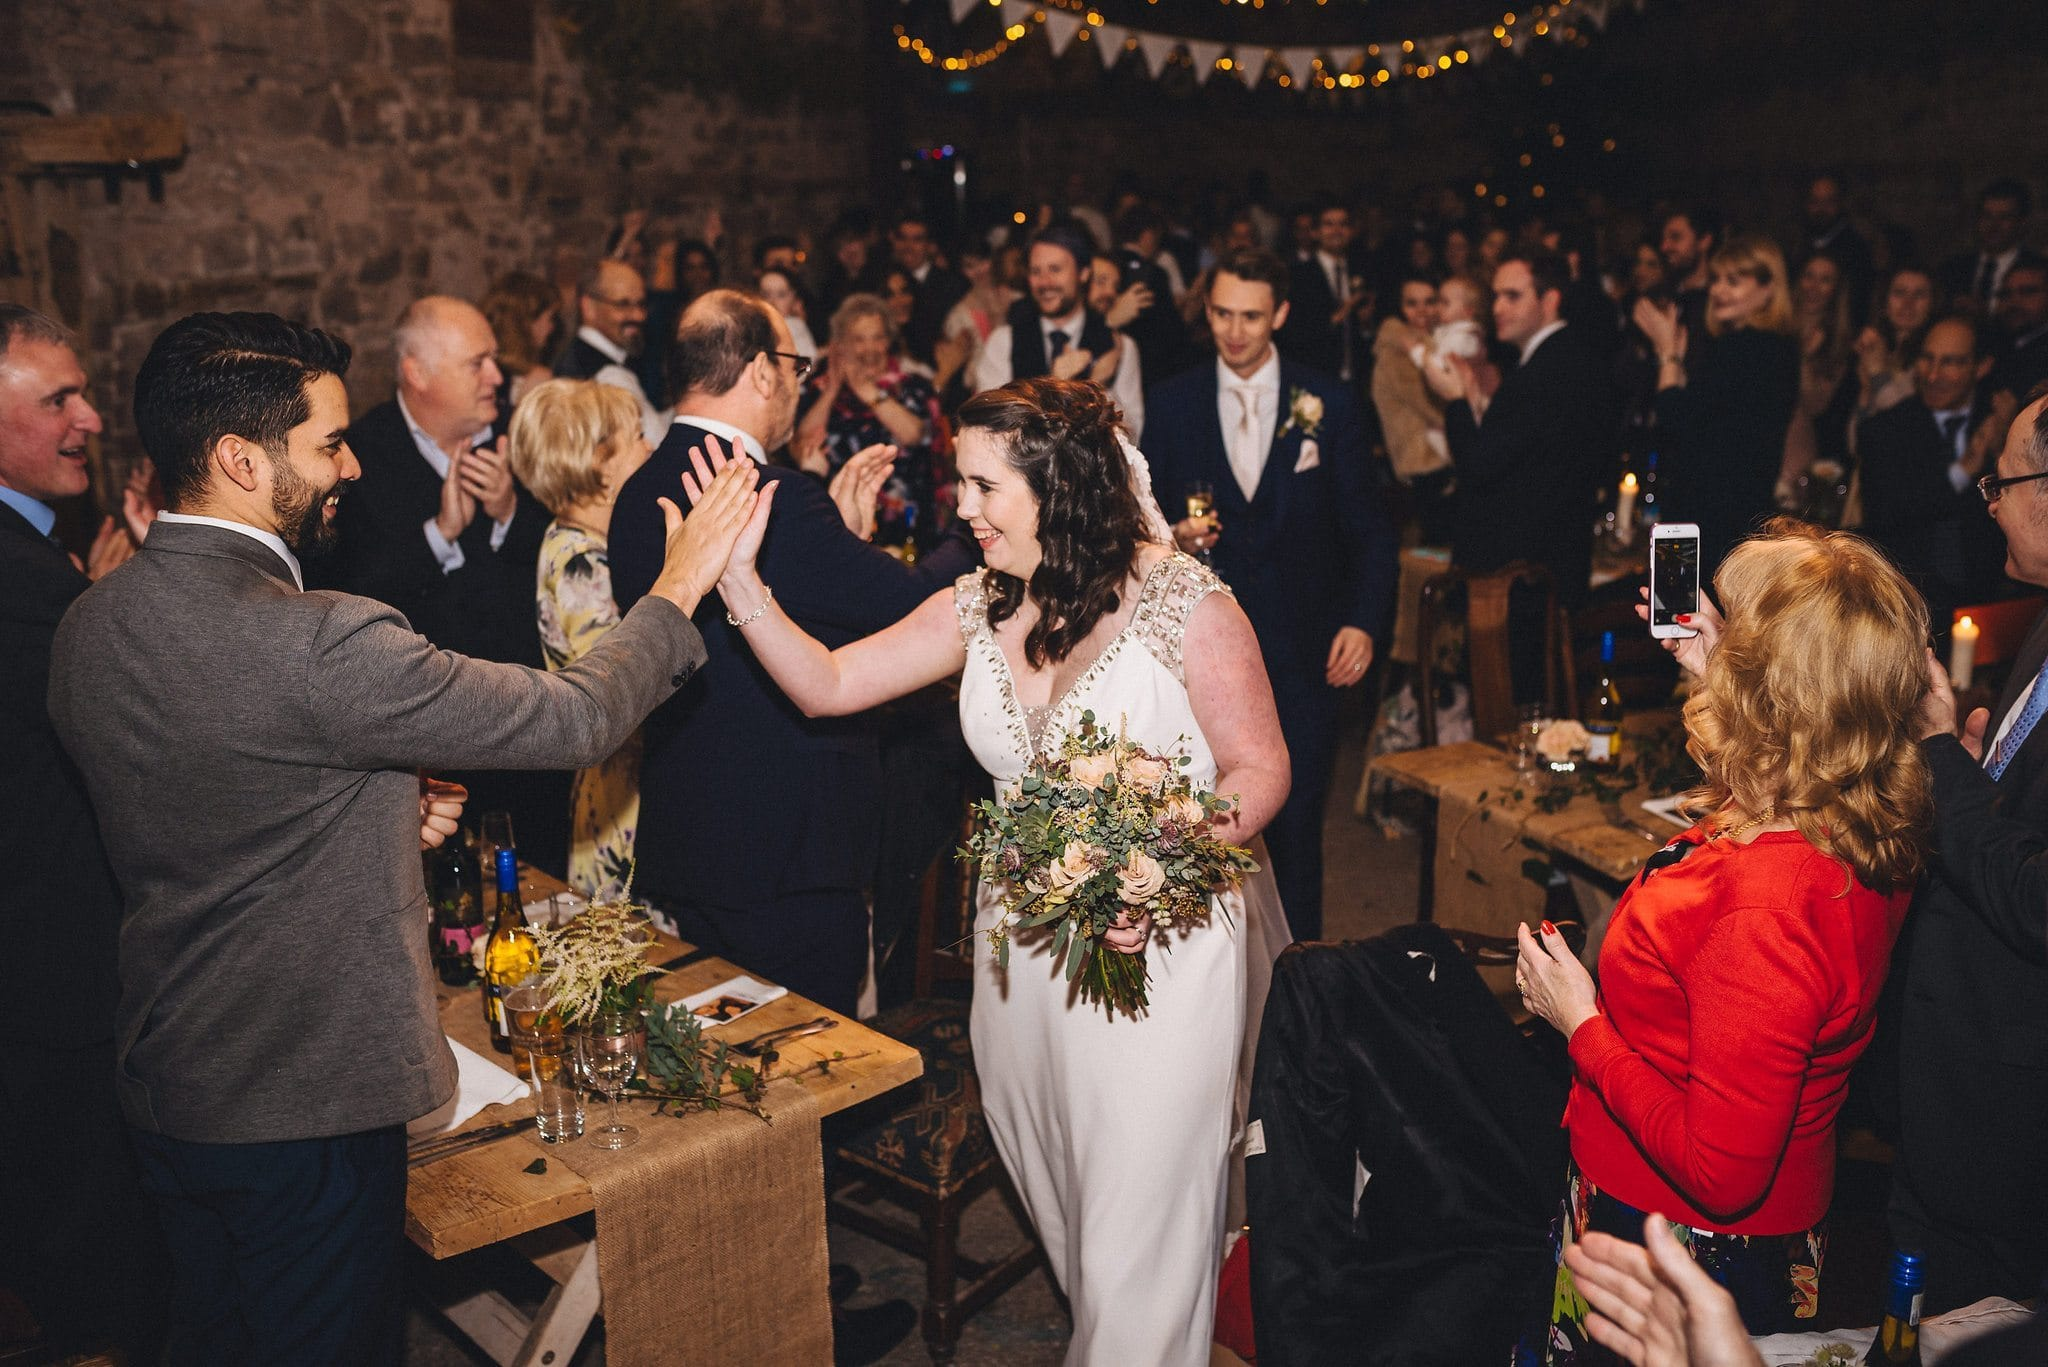 Bride gives guest a high five as she enters the dining room at Lyde Court with her new husband